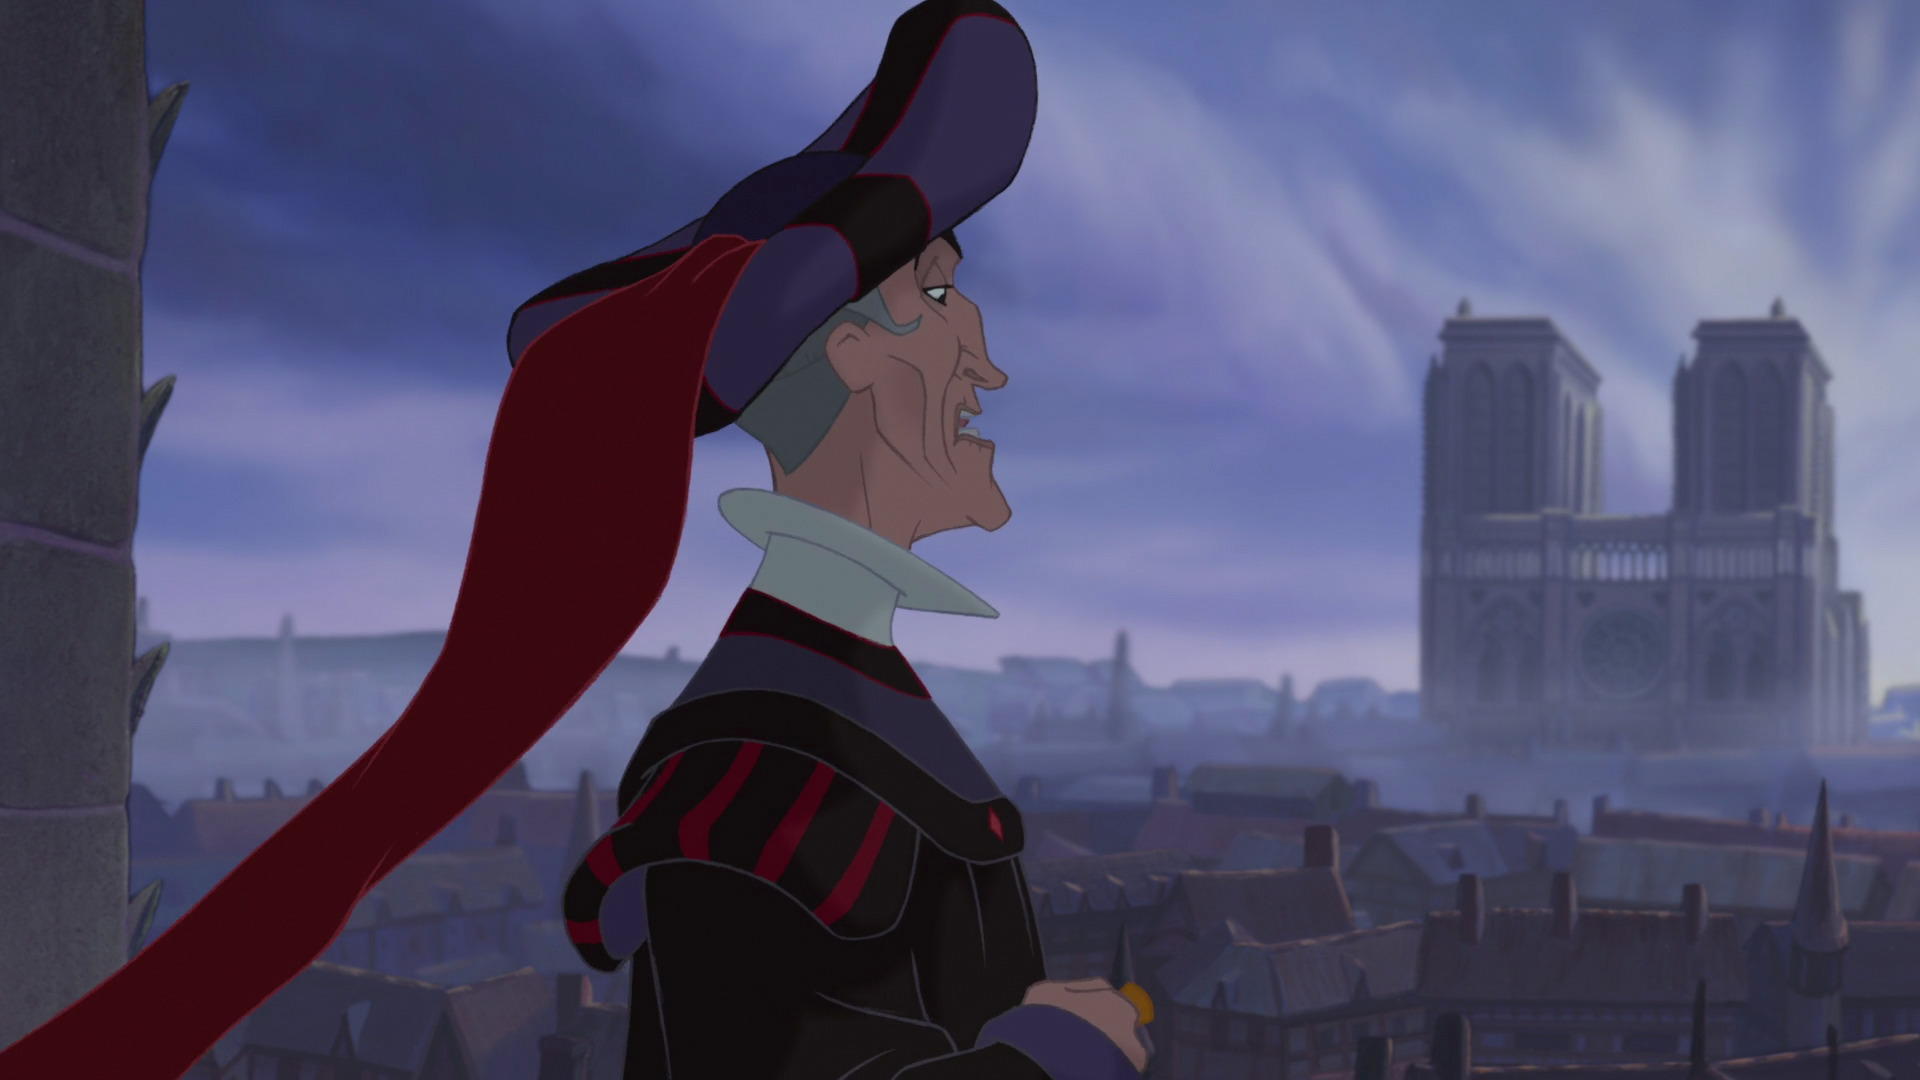 Villain Vignettes 3 Judge Claude Frollo Rotoscopers